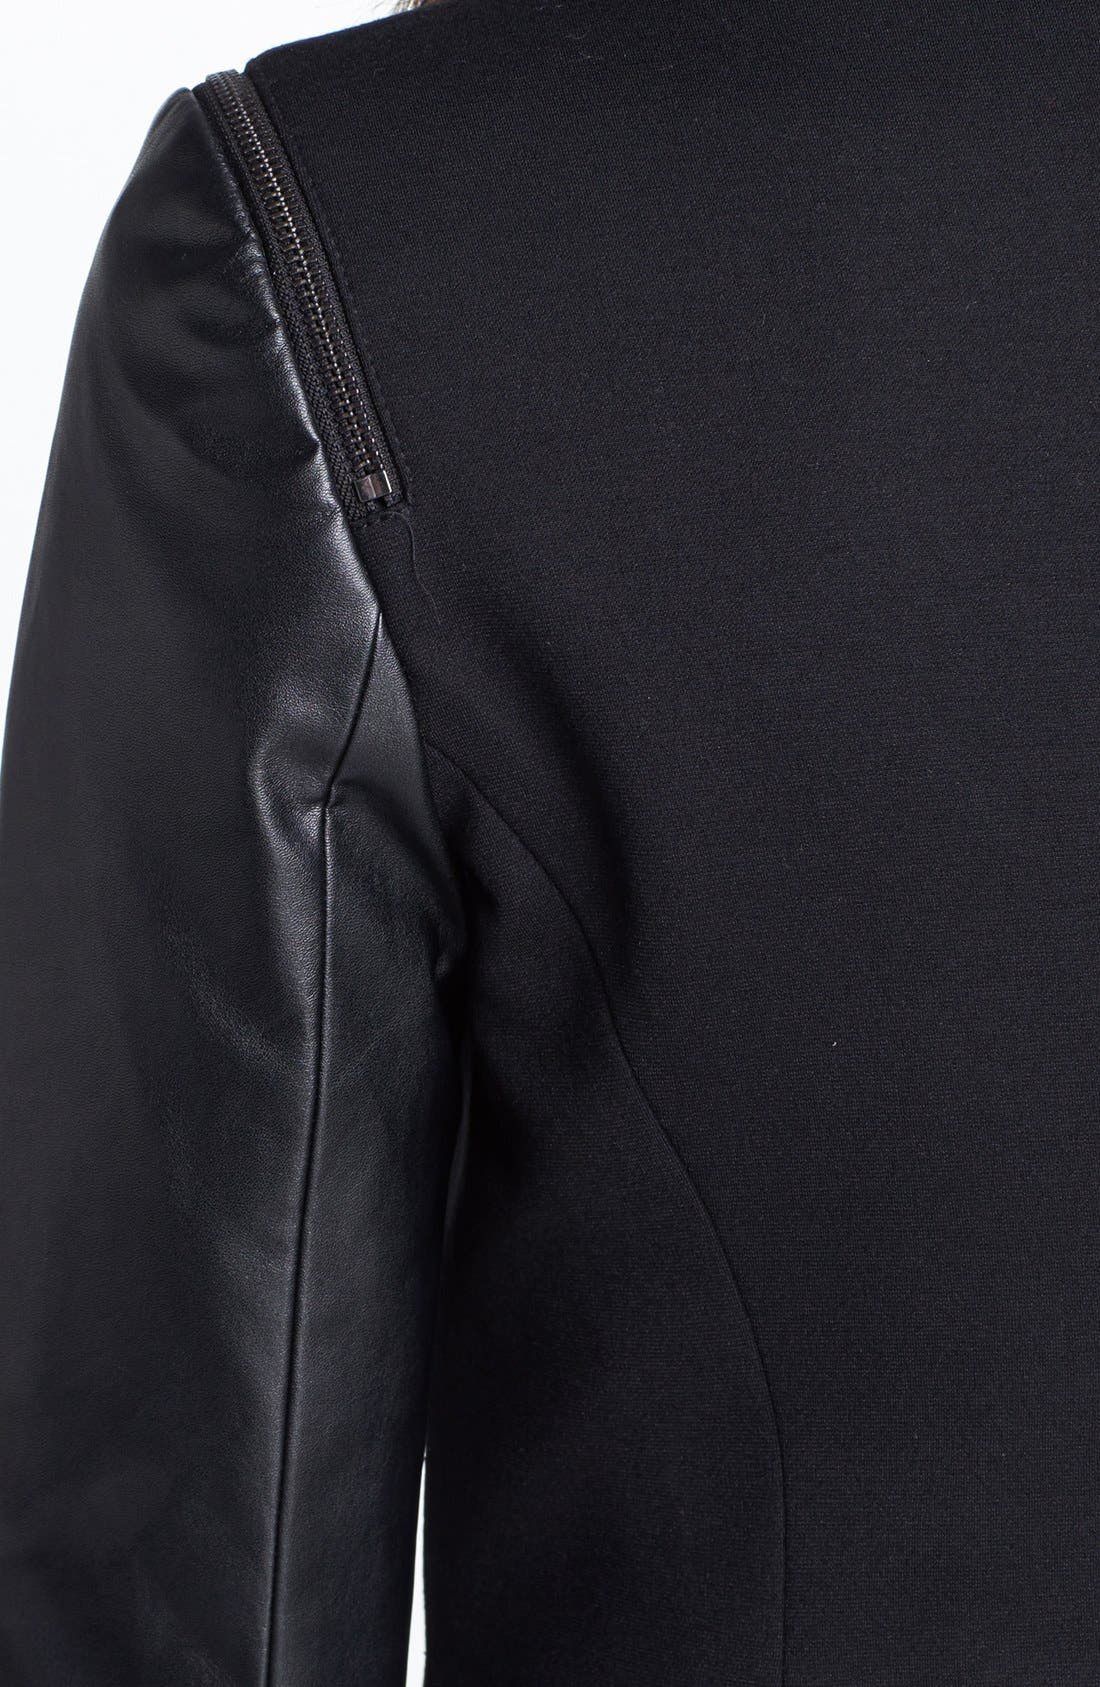 Alternate Image 3  - Vince Camuto Collarless Faux Leather Sleeve Jacket